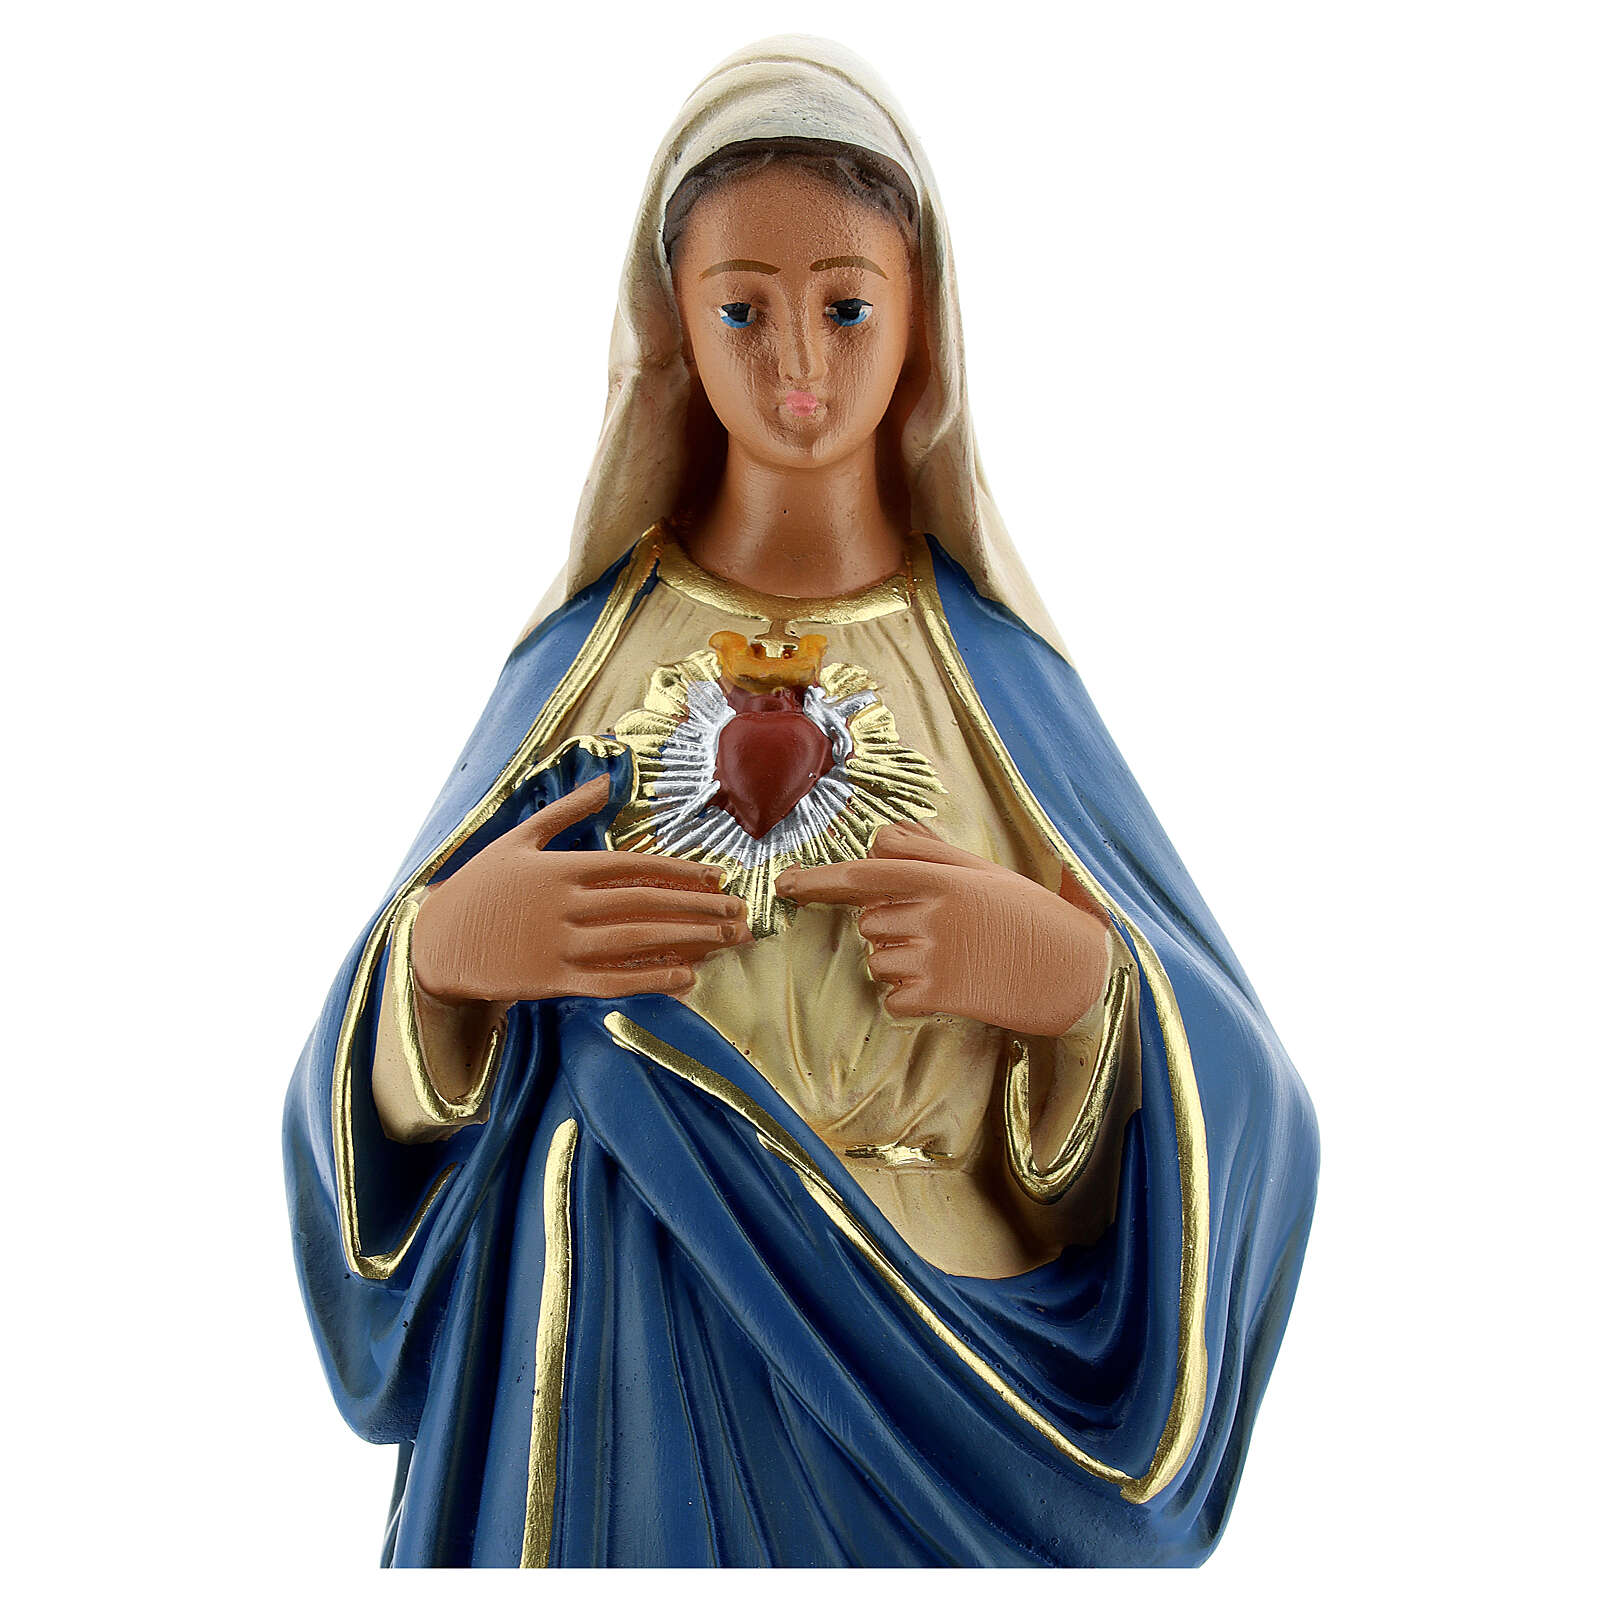 Plaster statue Immaculate Heart of Mary 12 in hand-painted Arte Barsanti 4